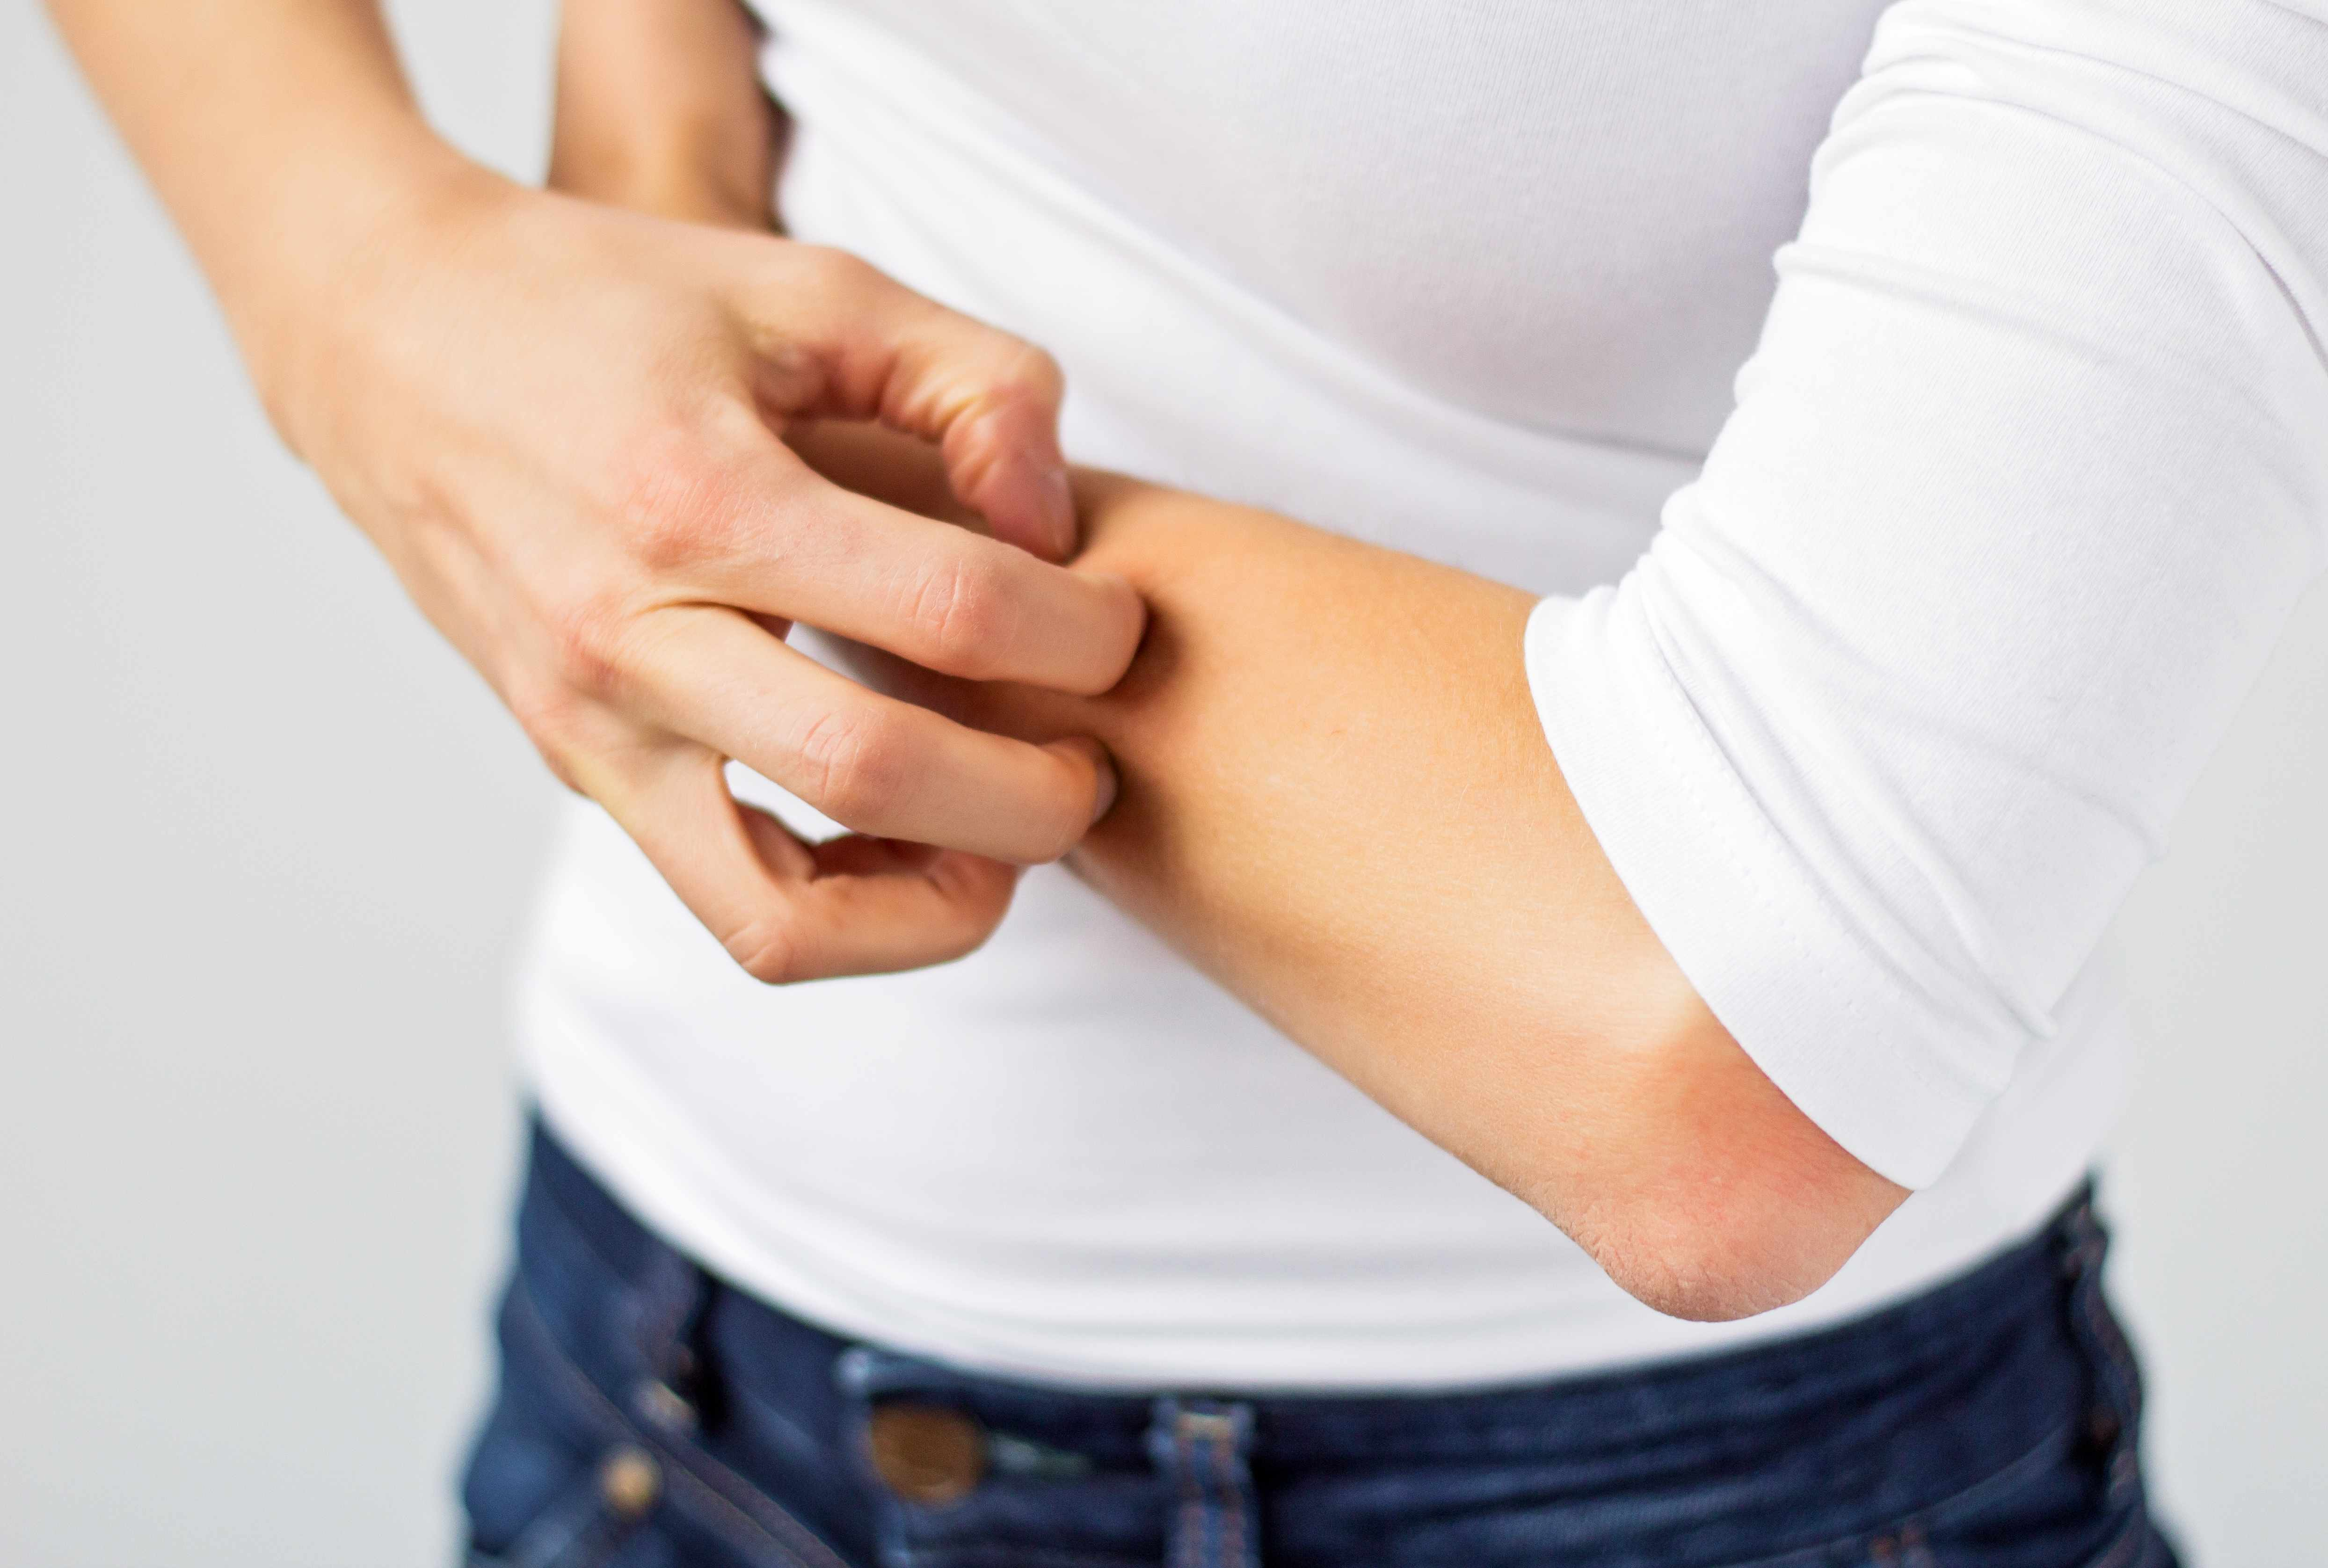 woman scratching her arm, dry skin itch